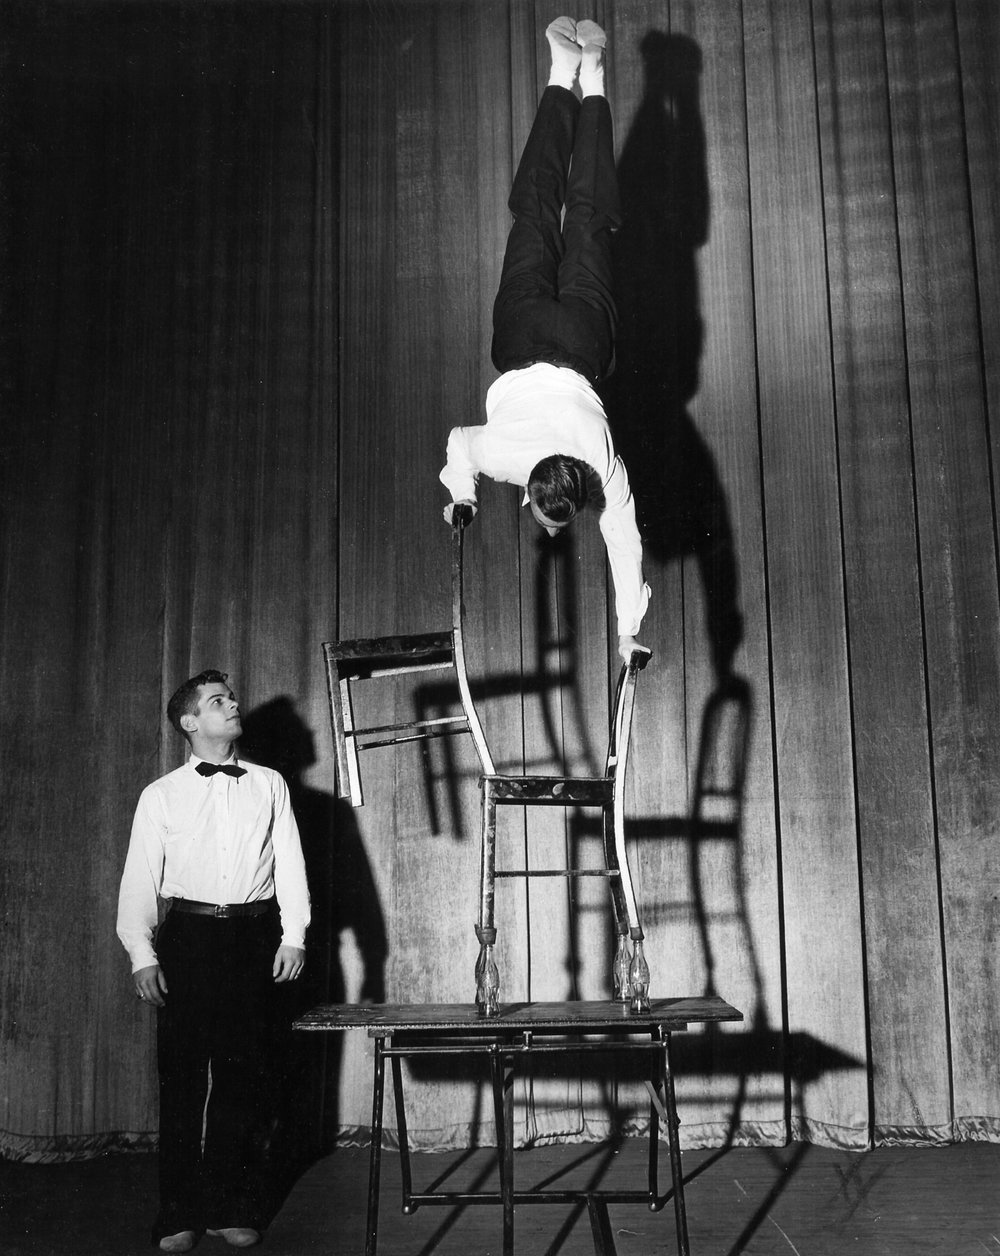 Gymkana 1949 illusion handstand on bottles performed by Al Kuckhoff, observed by Tom Bolgiano